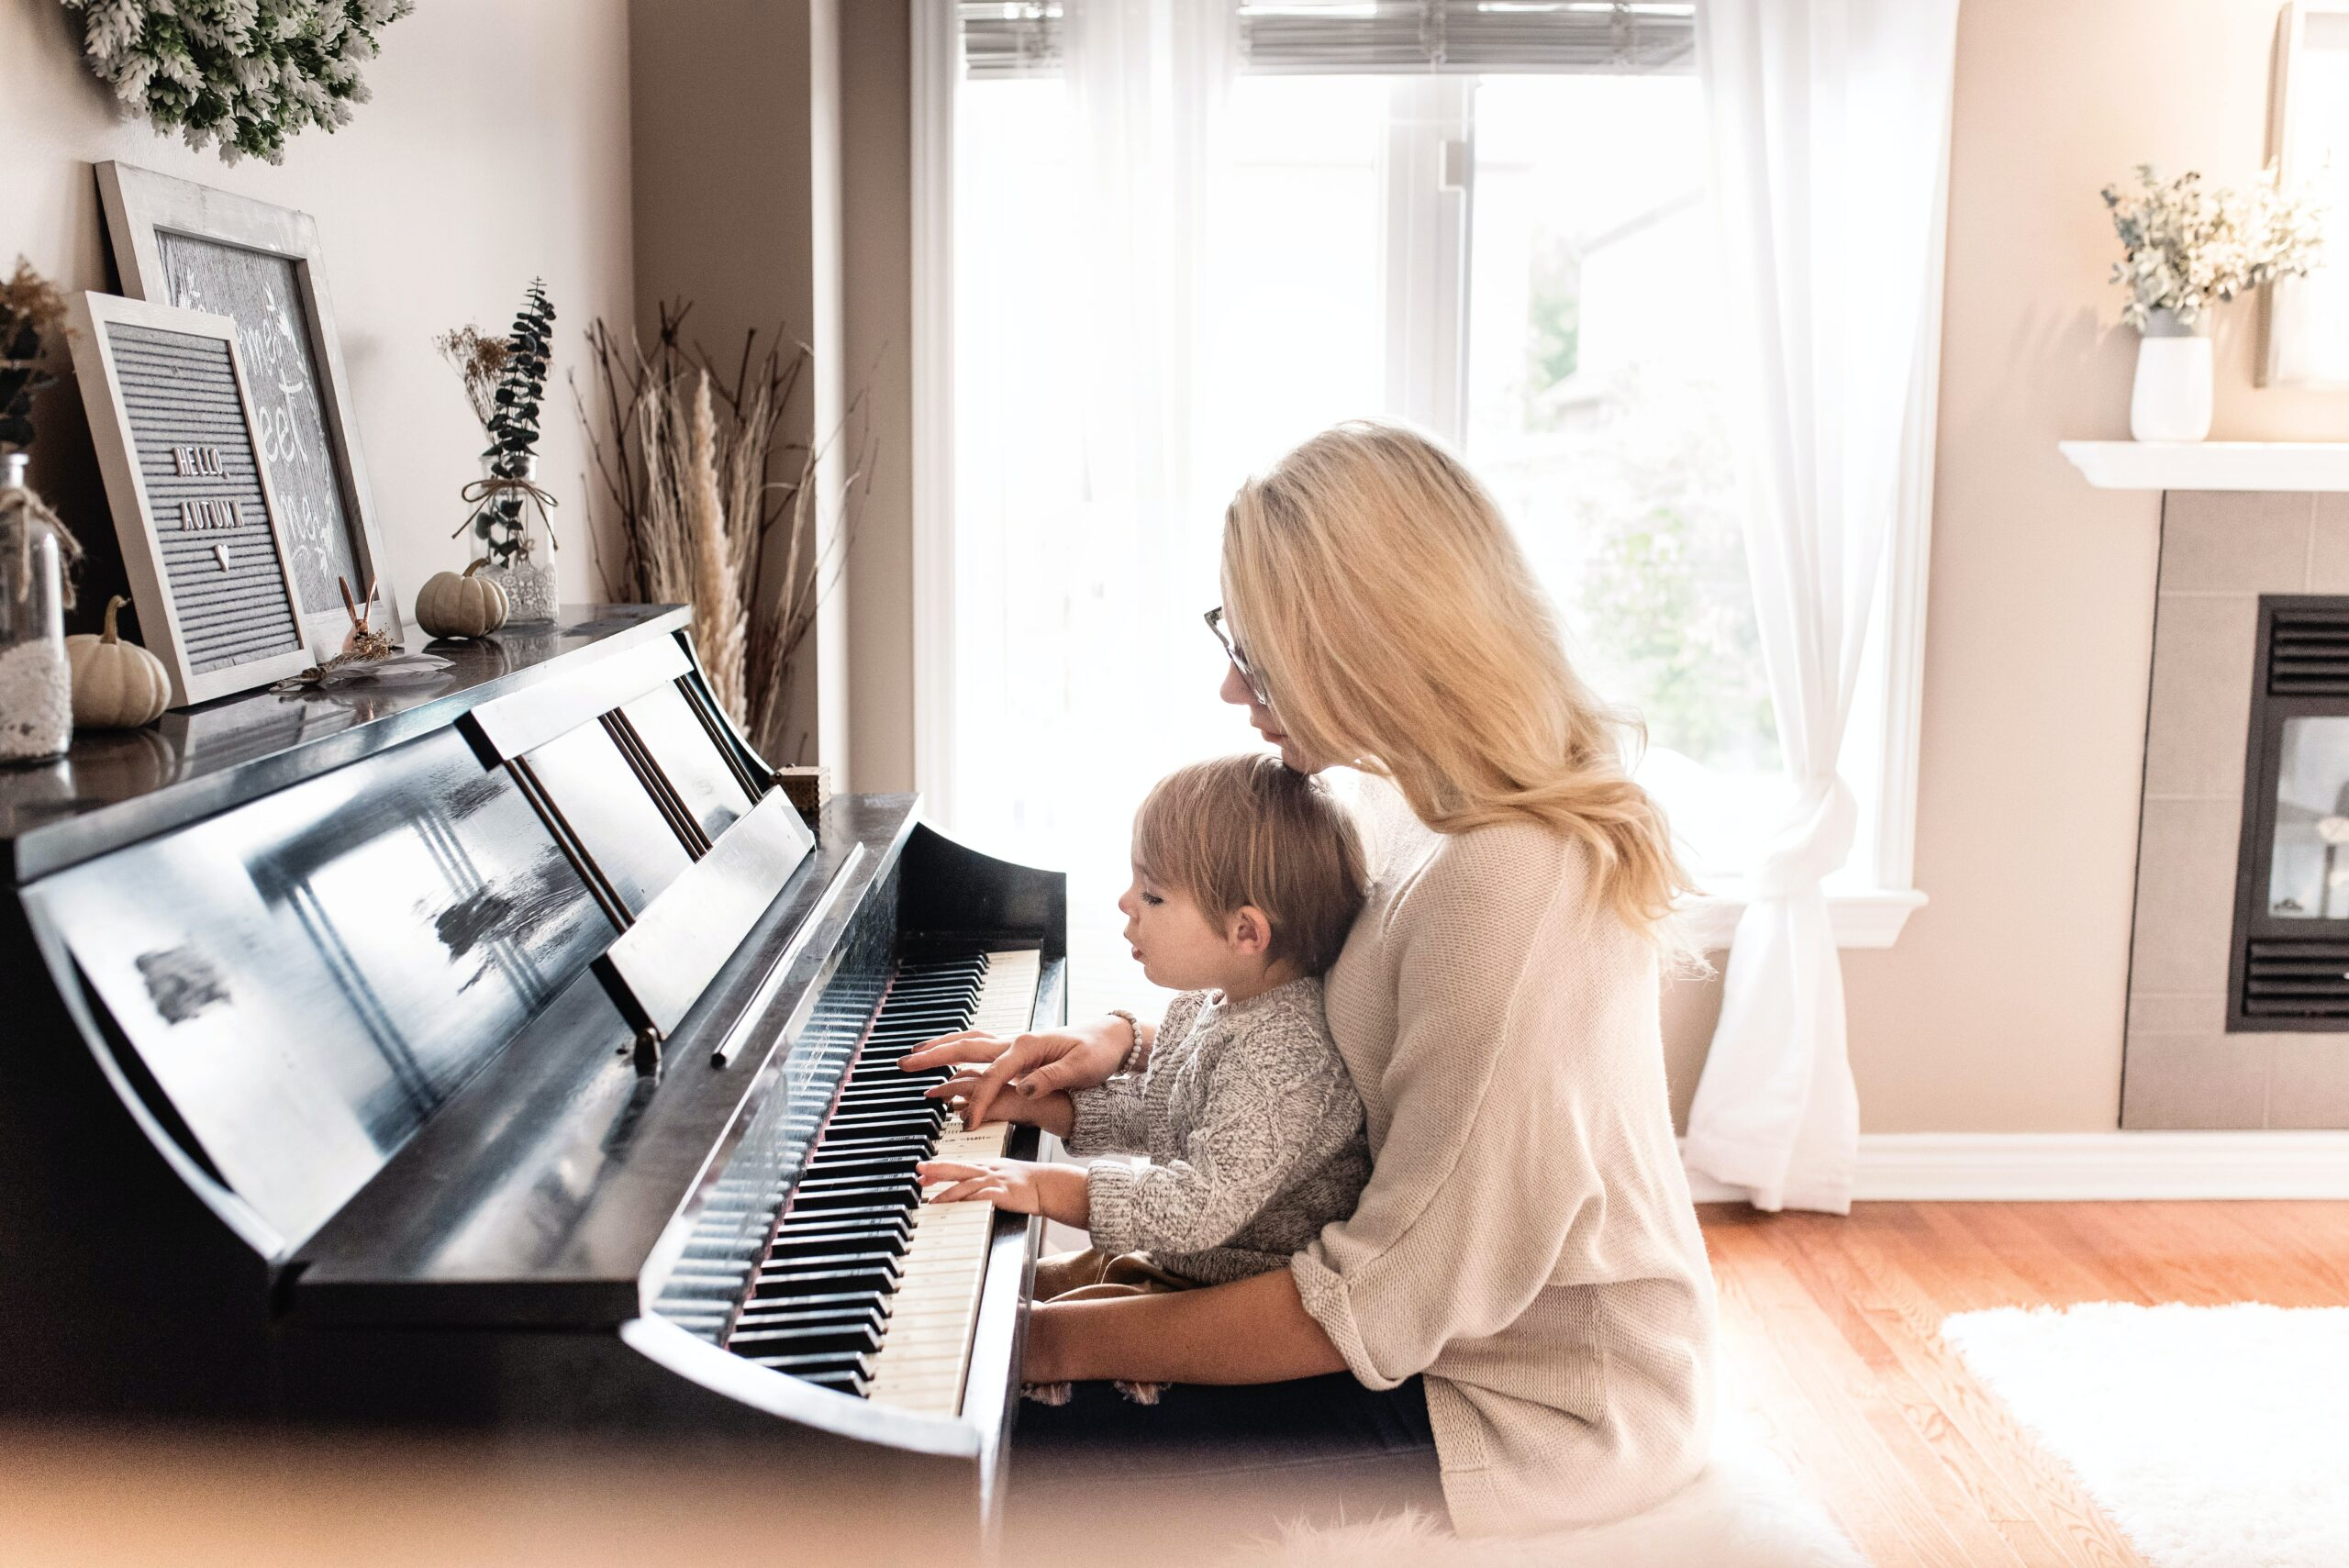 Find a Piano Teacher - Top Tips for Getting a Great Tutor